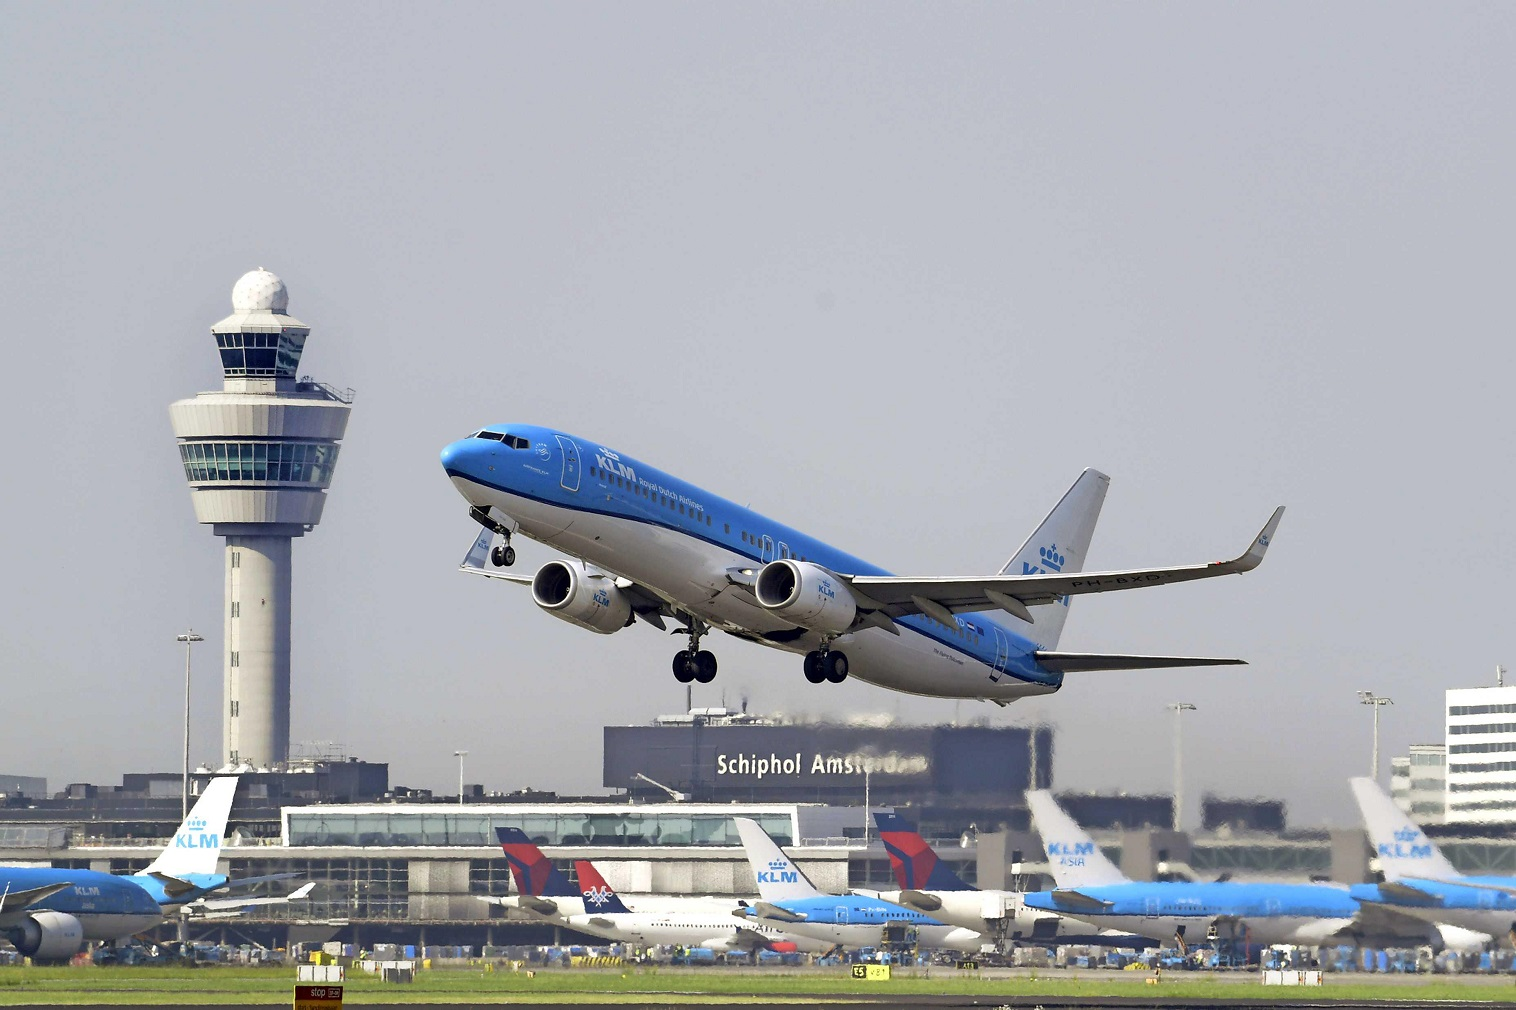 KLM will be flying between Schiphol Airport and Poznan on a daily basis as of 25 October this year.